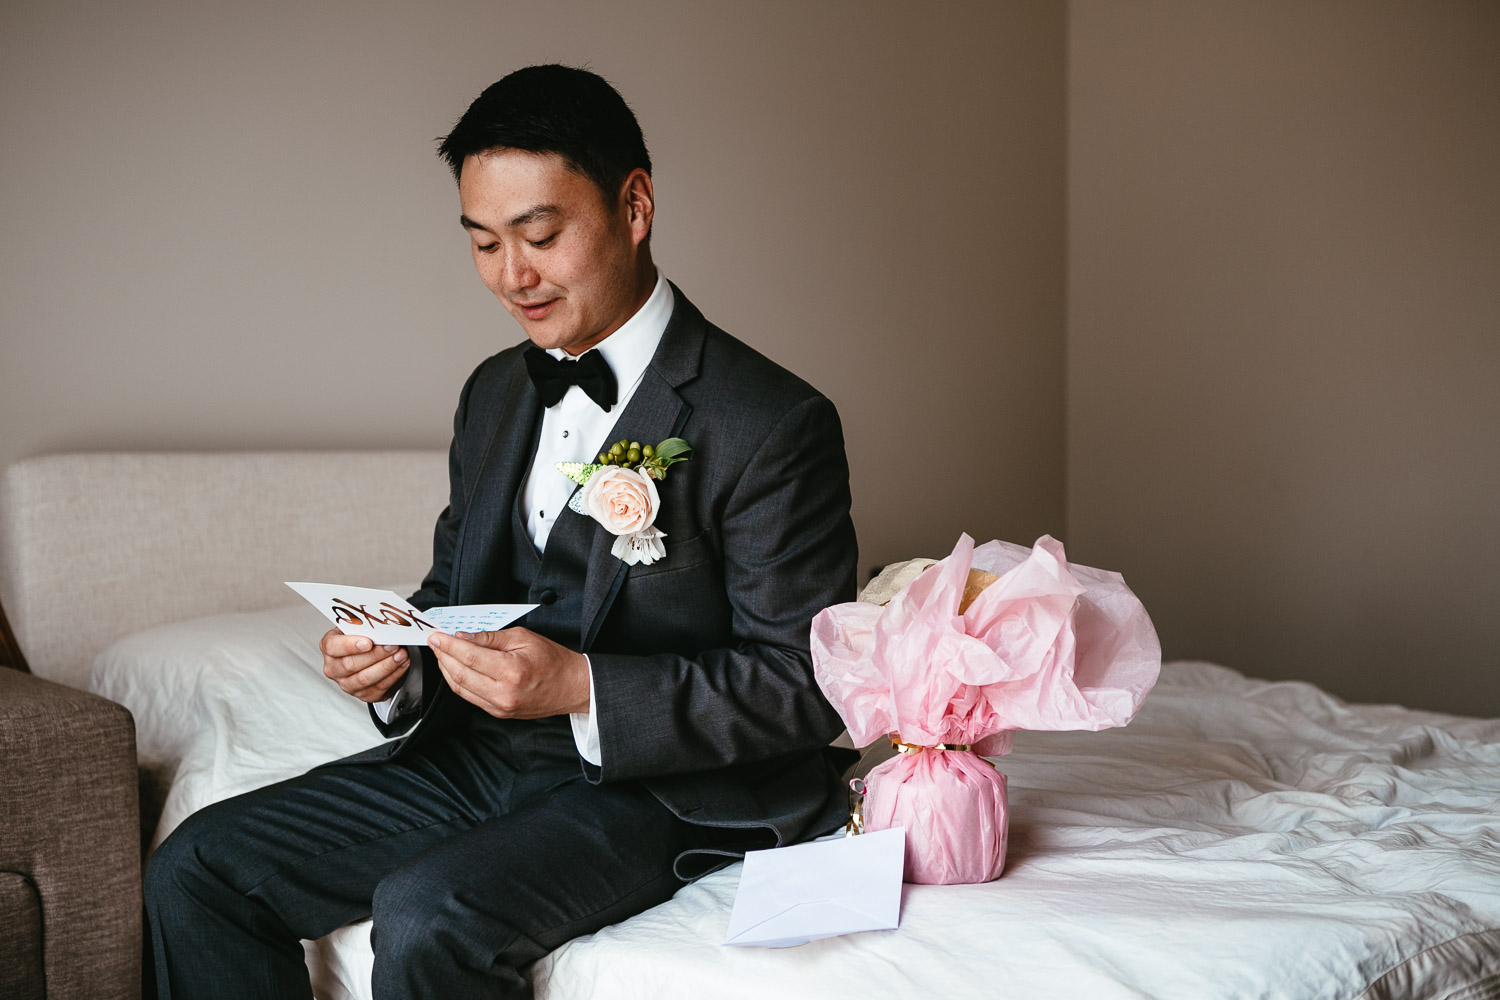 groom reading card from bride vancouver wedding photographer